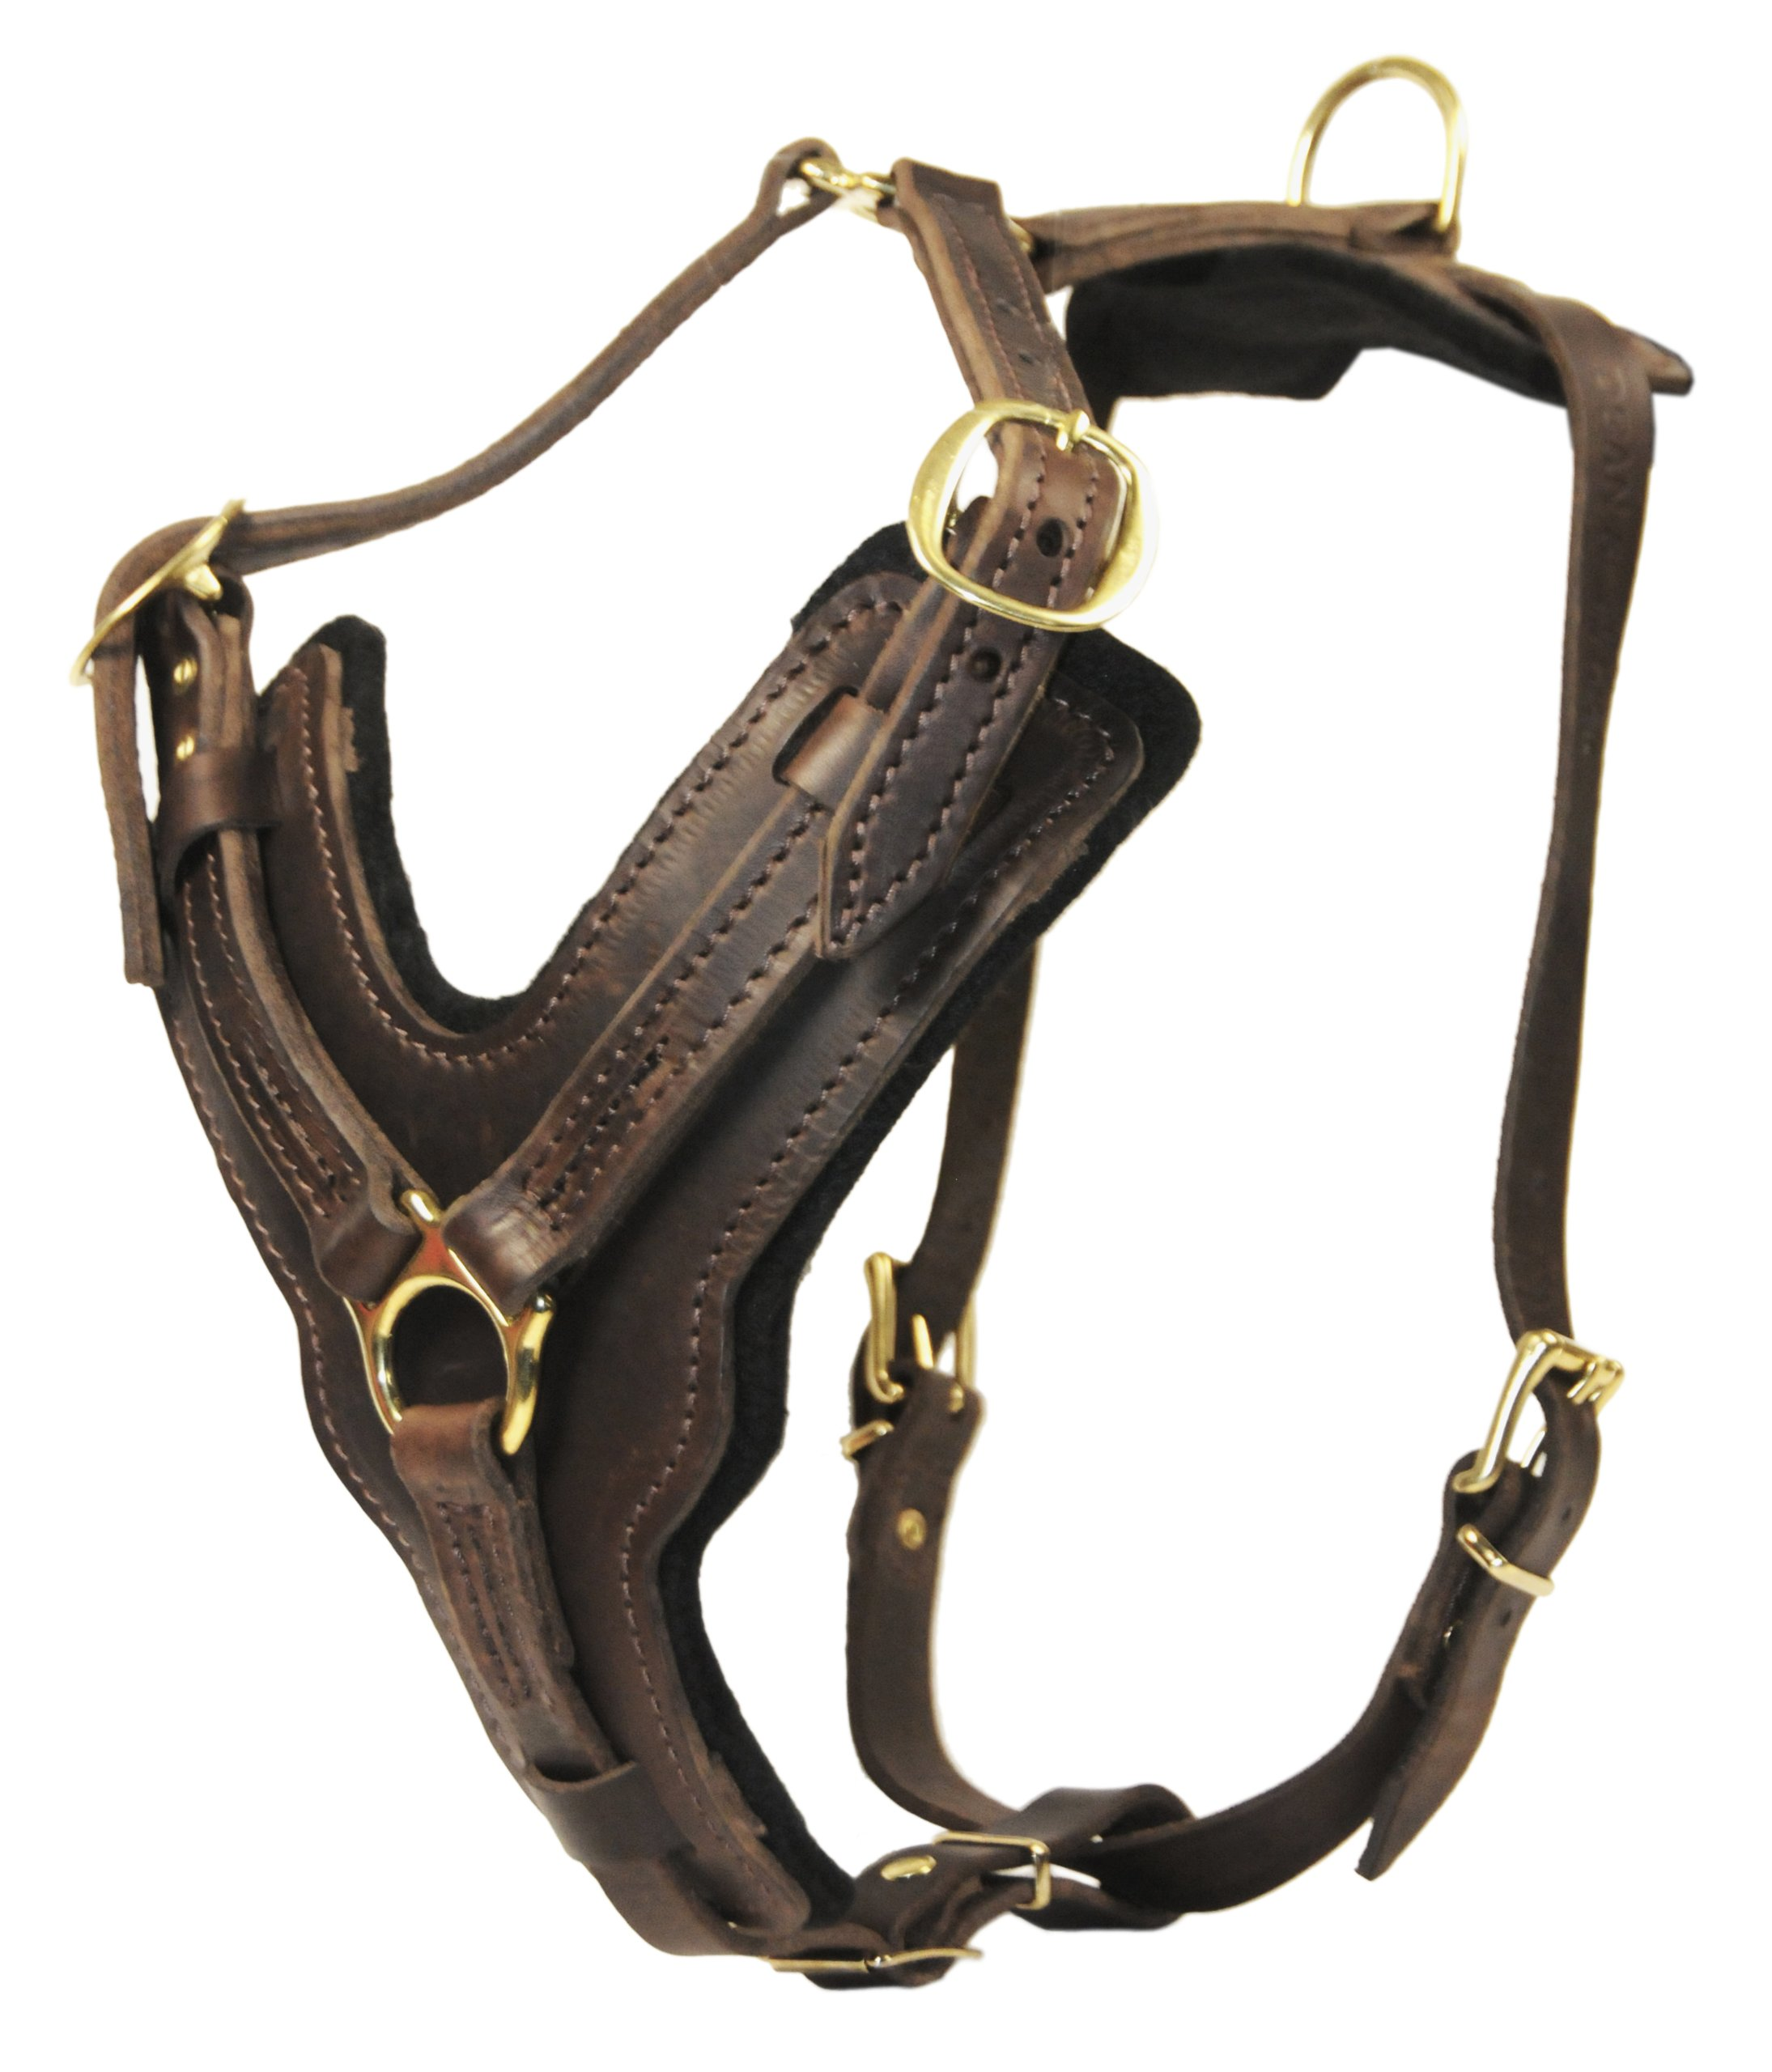 Dean and Tyler The Victory Solid Brass Belt Style Buckles Leather Dog Harness, Brown, Large - Fits Girth Size: 31-Inch to 41-Inch